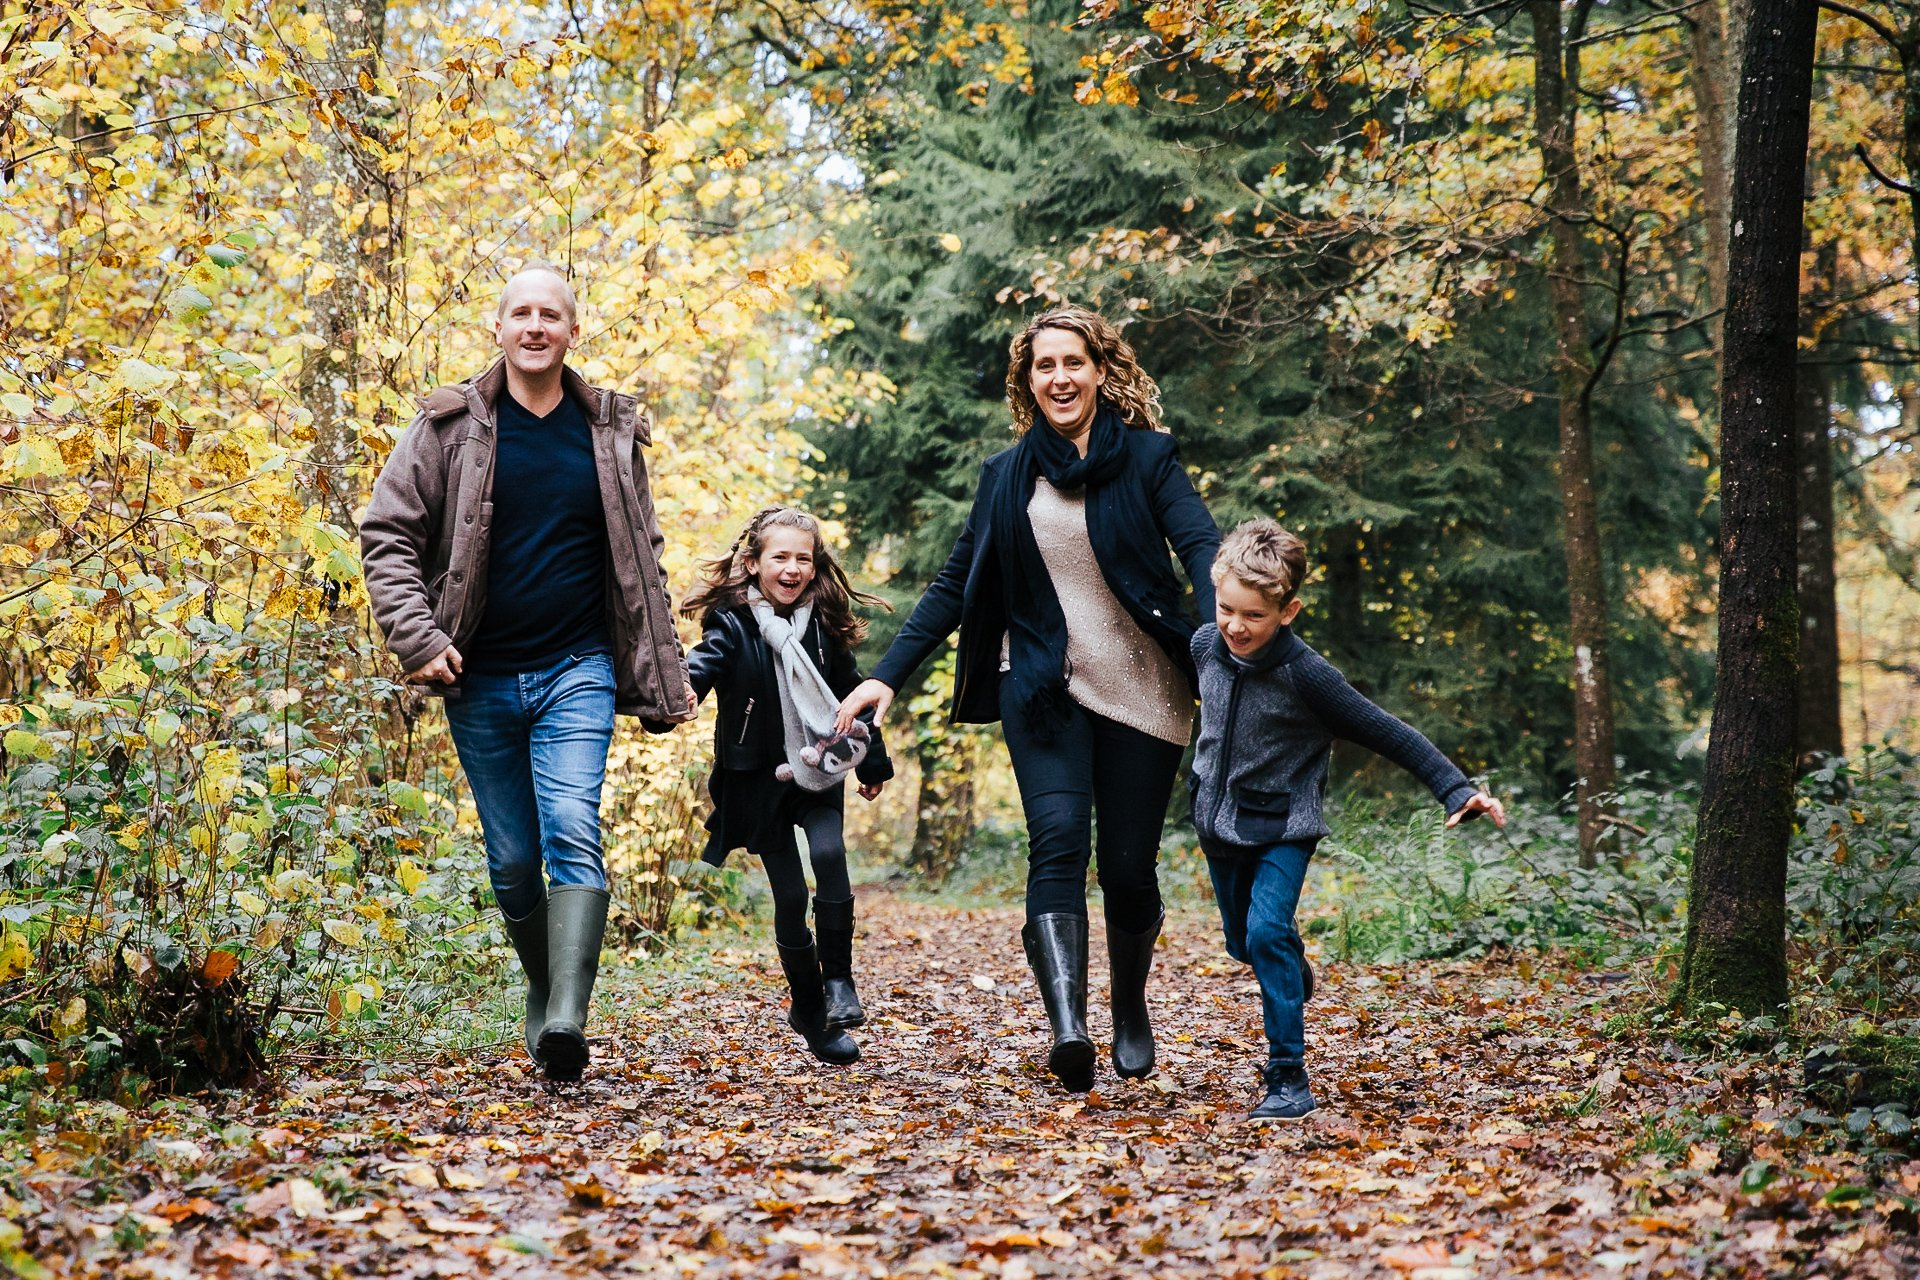 Lifestyle Family Portrait shoot in beautiful autumnal woodland